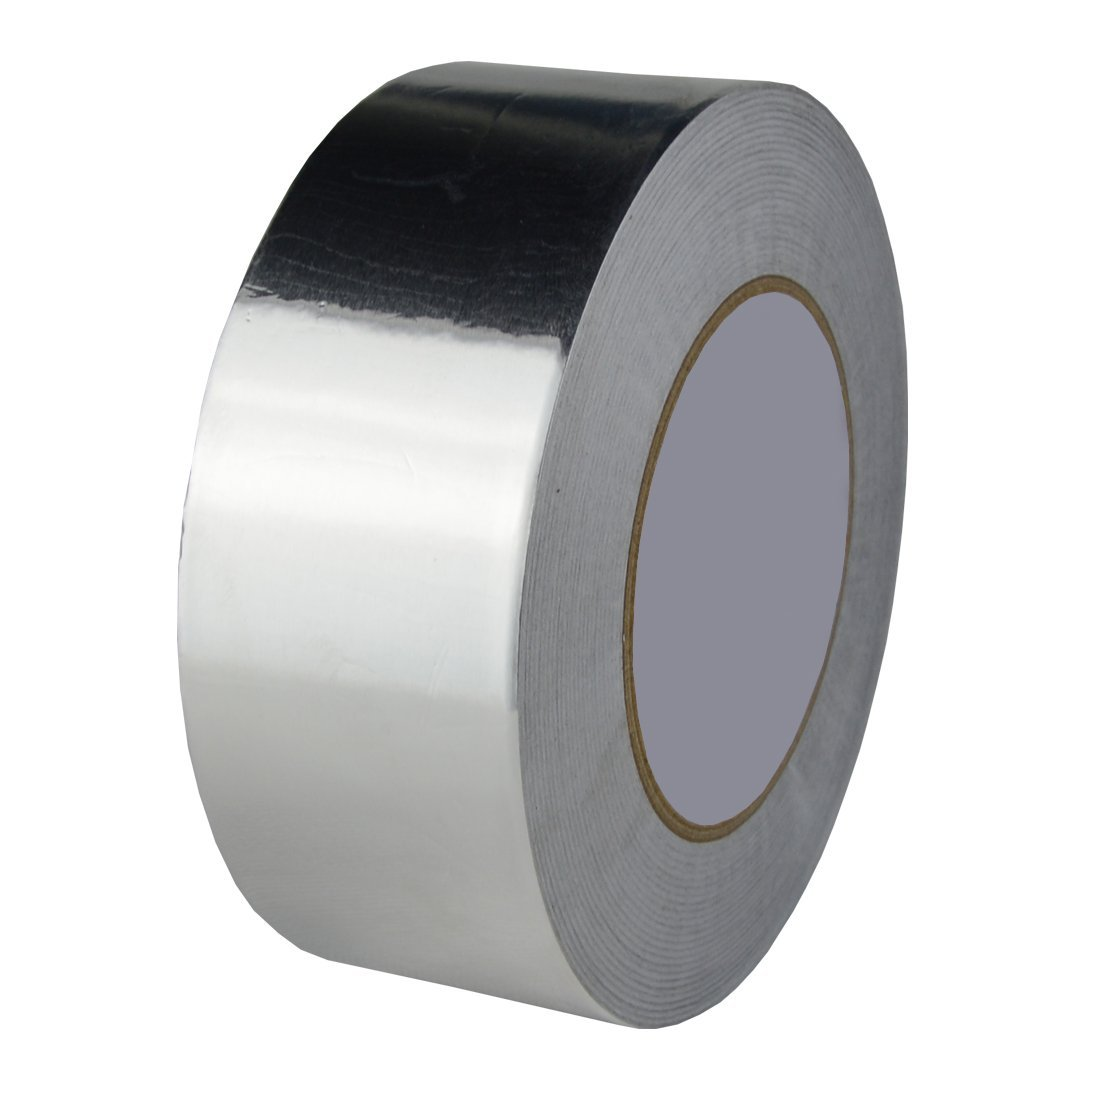 Hxtape 4 Mil (2 inch-55yds) Aluminum Foil Tape,Silver,Good for HVAC, Sealing & Patching Hot & Cold Air Ducts, Metal Repair by Hxtape (Image #1)